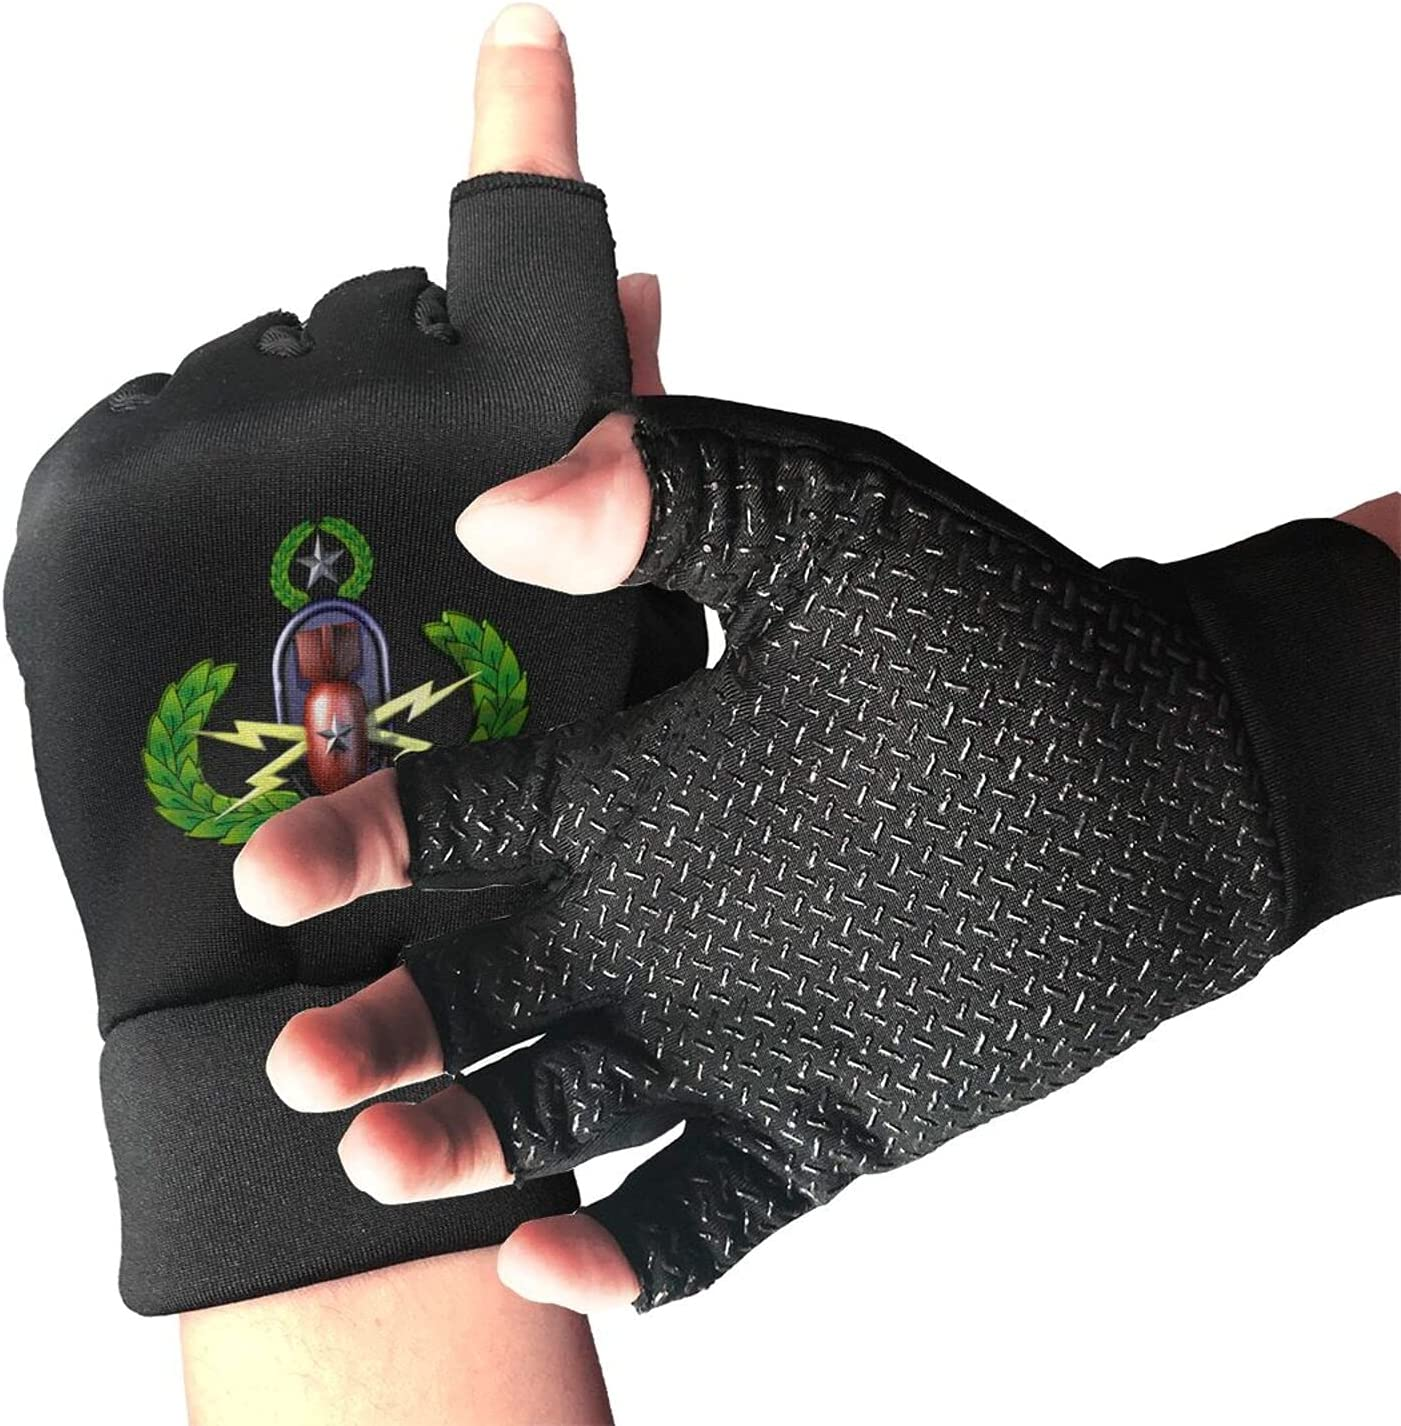 Sale EOD Military Al sold out. Sports Gloves Suitable B Exercise Warmth Unisex for